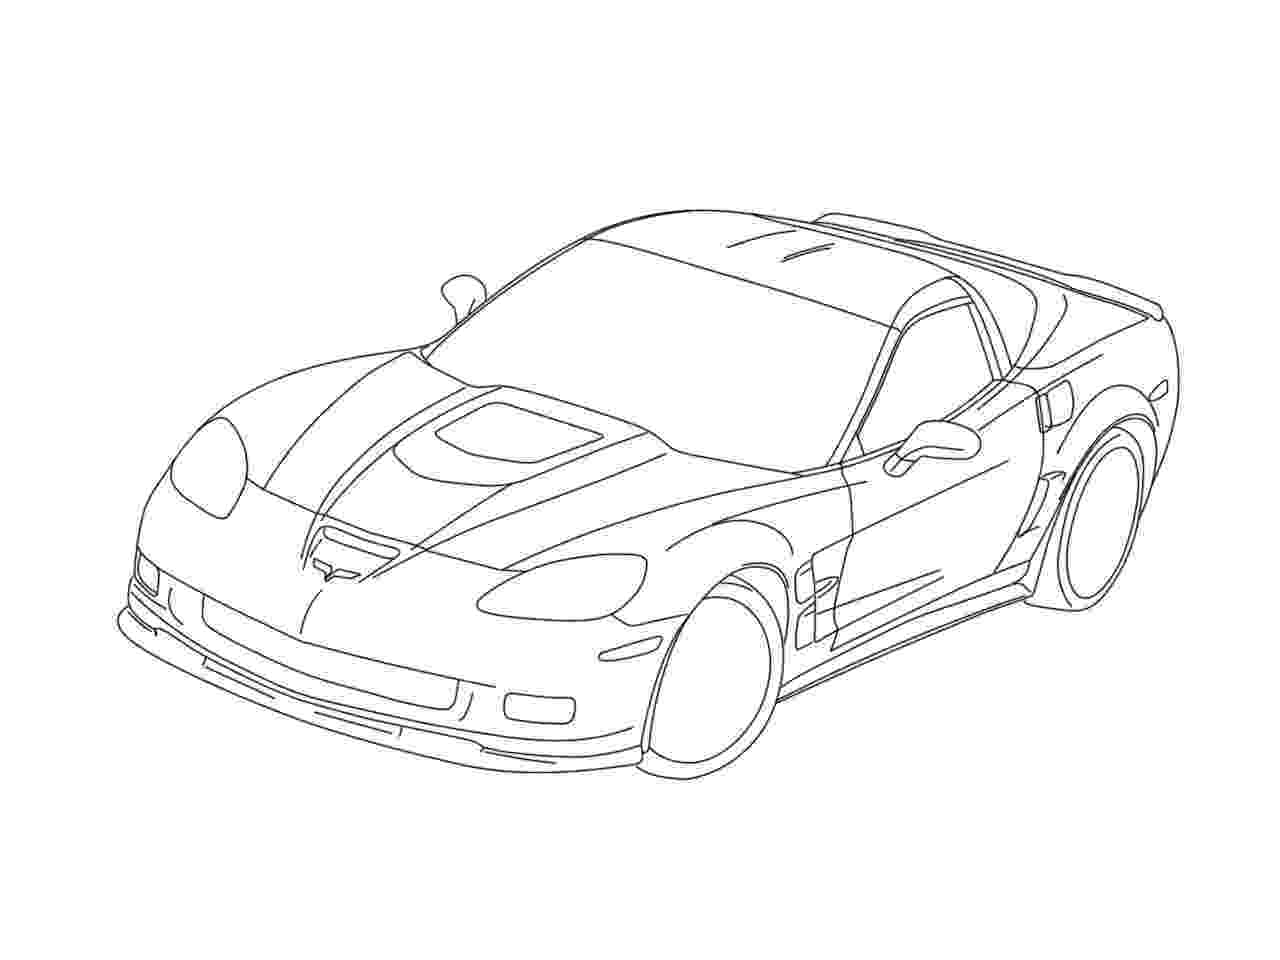 corvette coloring pages corvette coloring pages to download and print for free pages corvette coloring